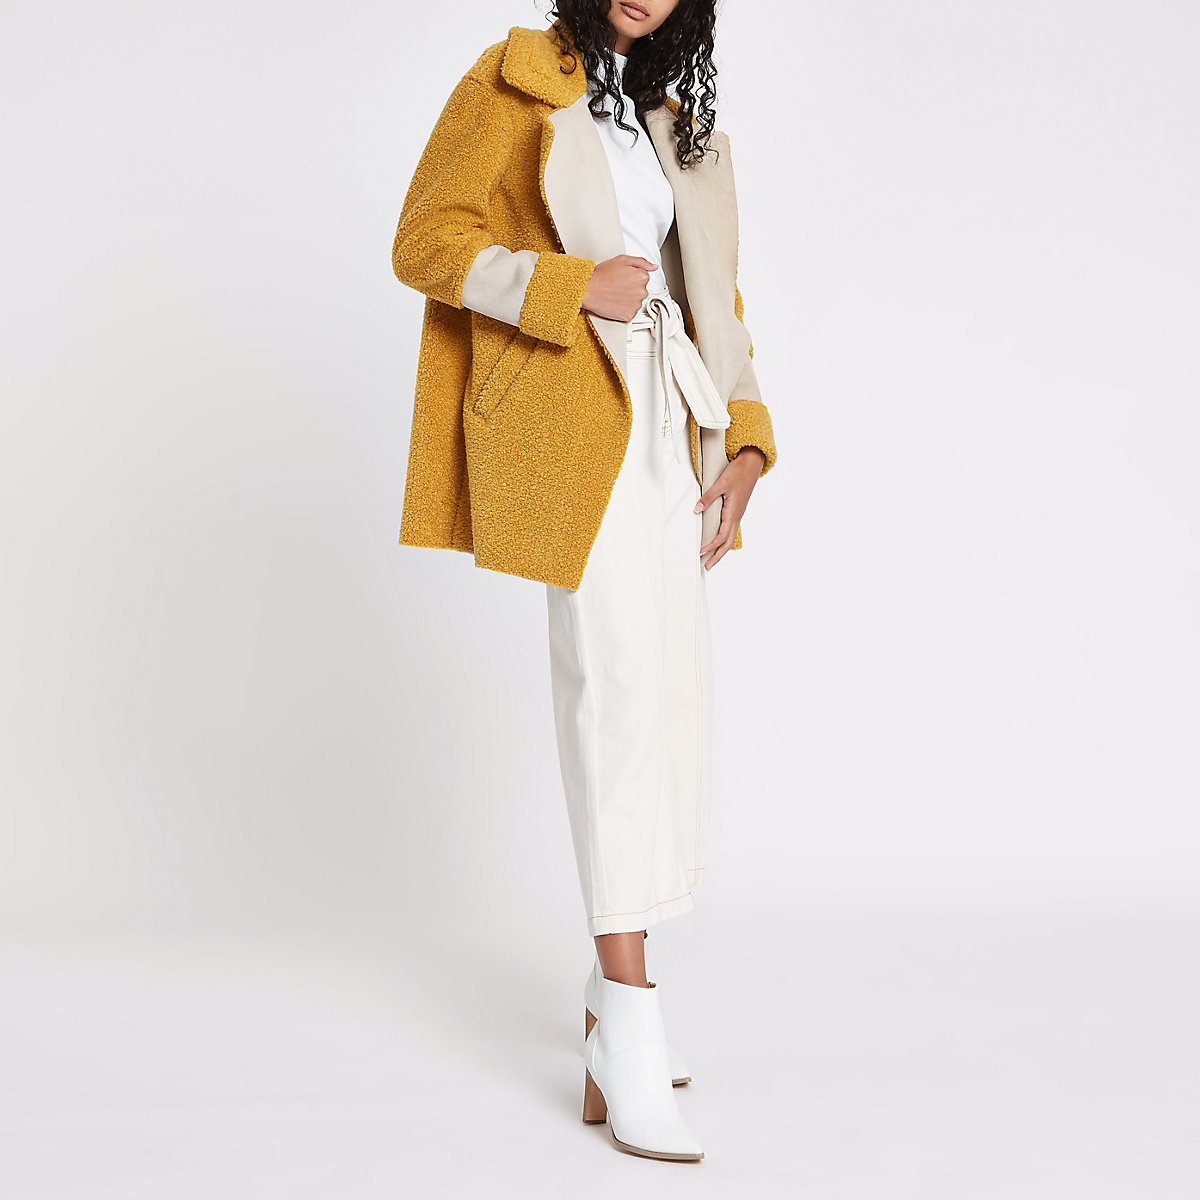 Manteau Imitation Peau De Mouton Jaune A Empiecements Manteaux